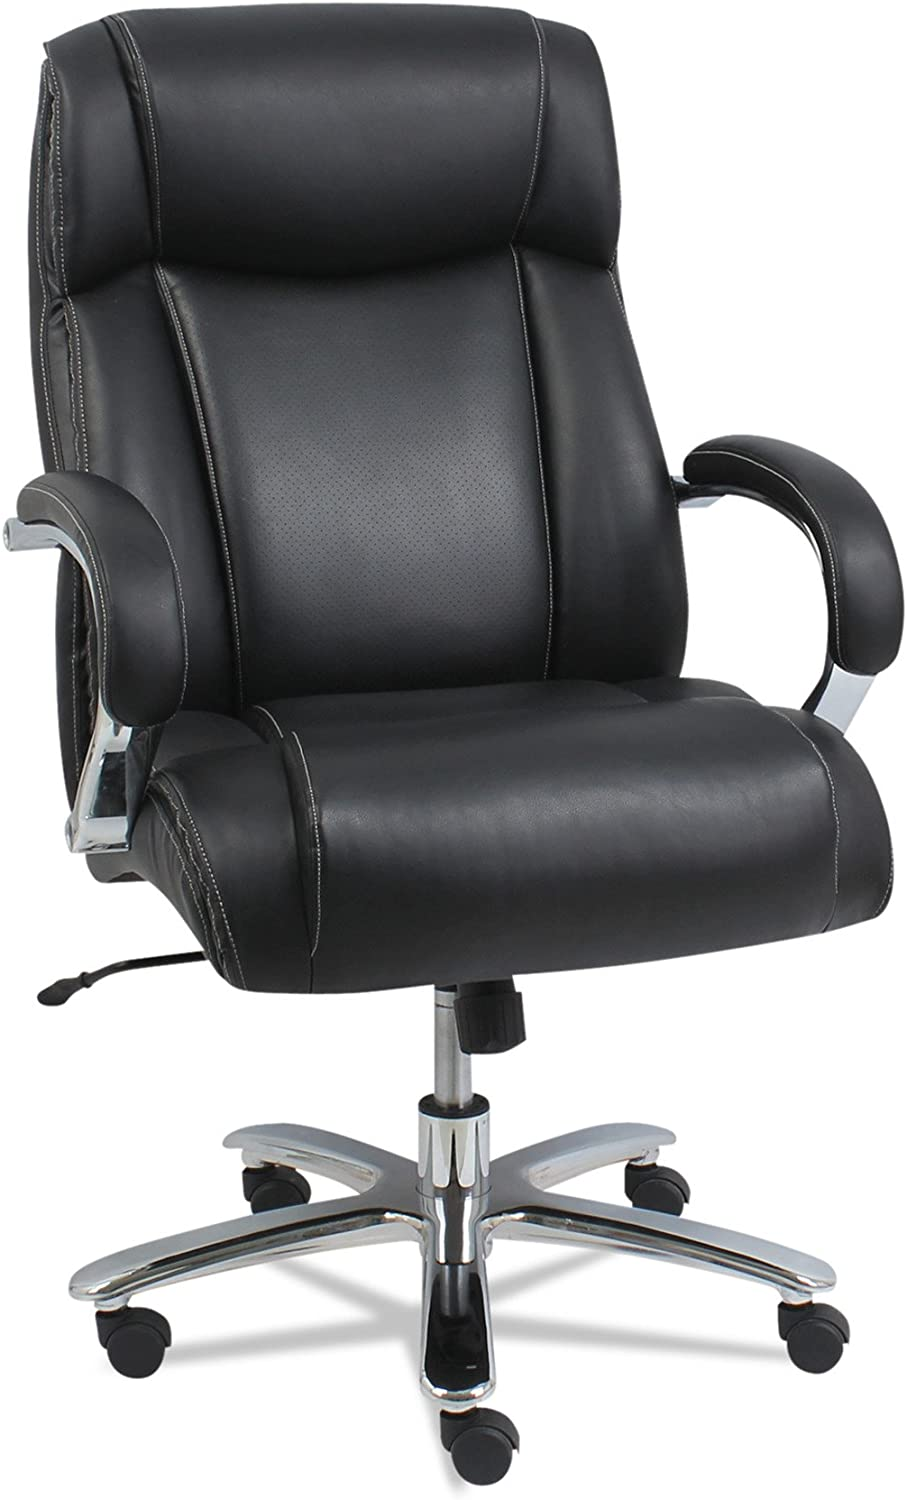 Alera ALE Maxxis Series Big and Tall Leather Chair, Black Chrome